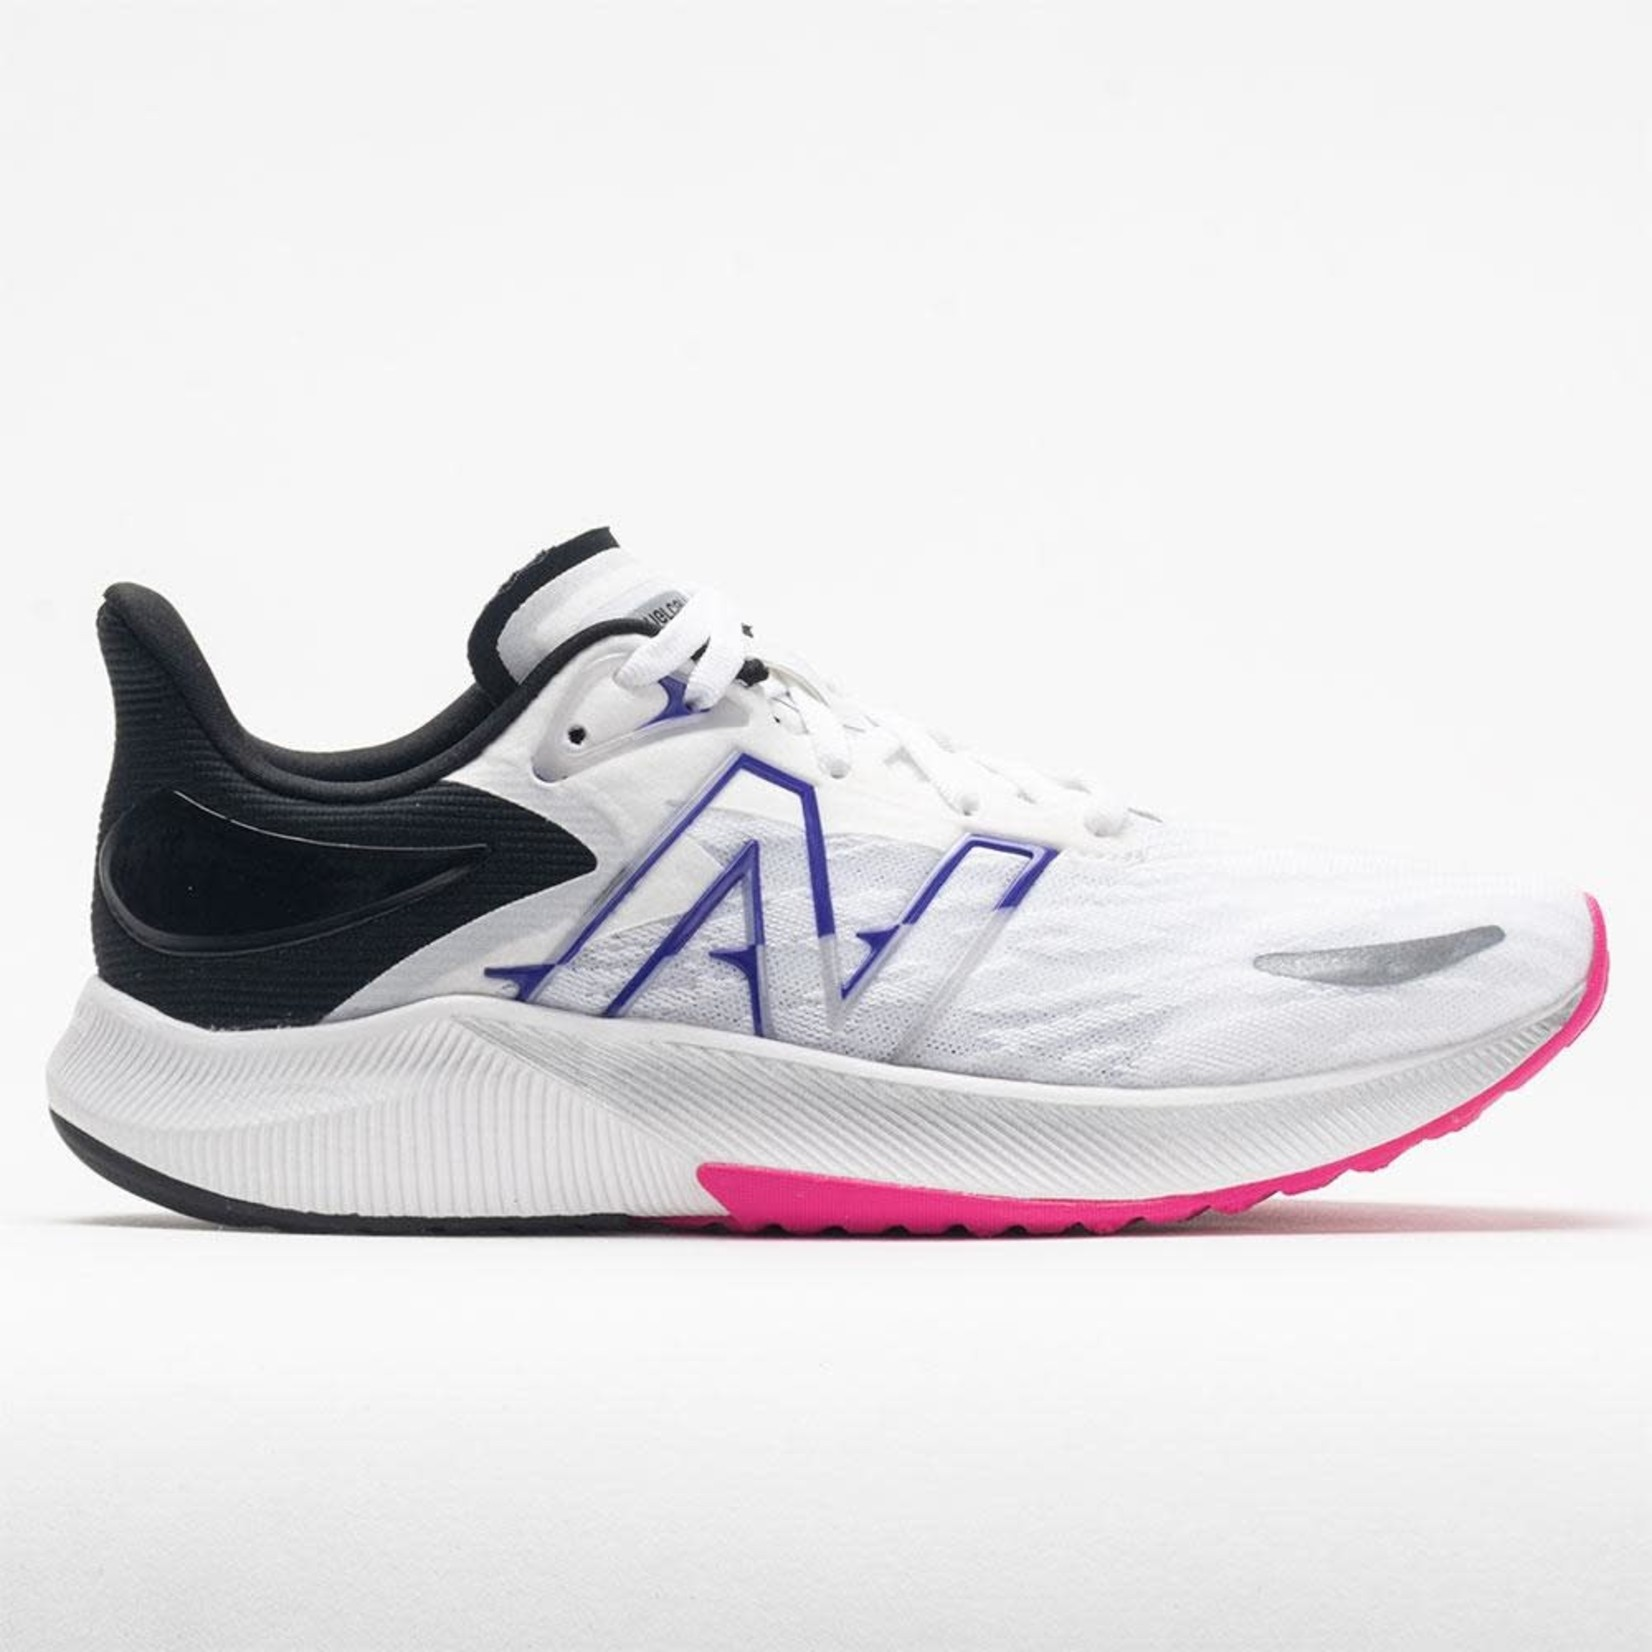 New Balance New Balance Running Shoes, FuelCell Propel v3, Ladies